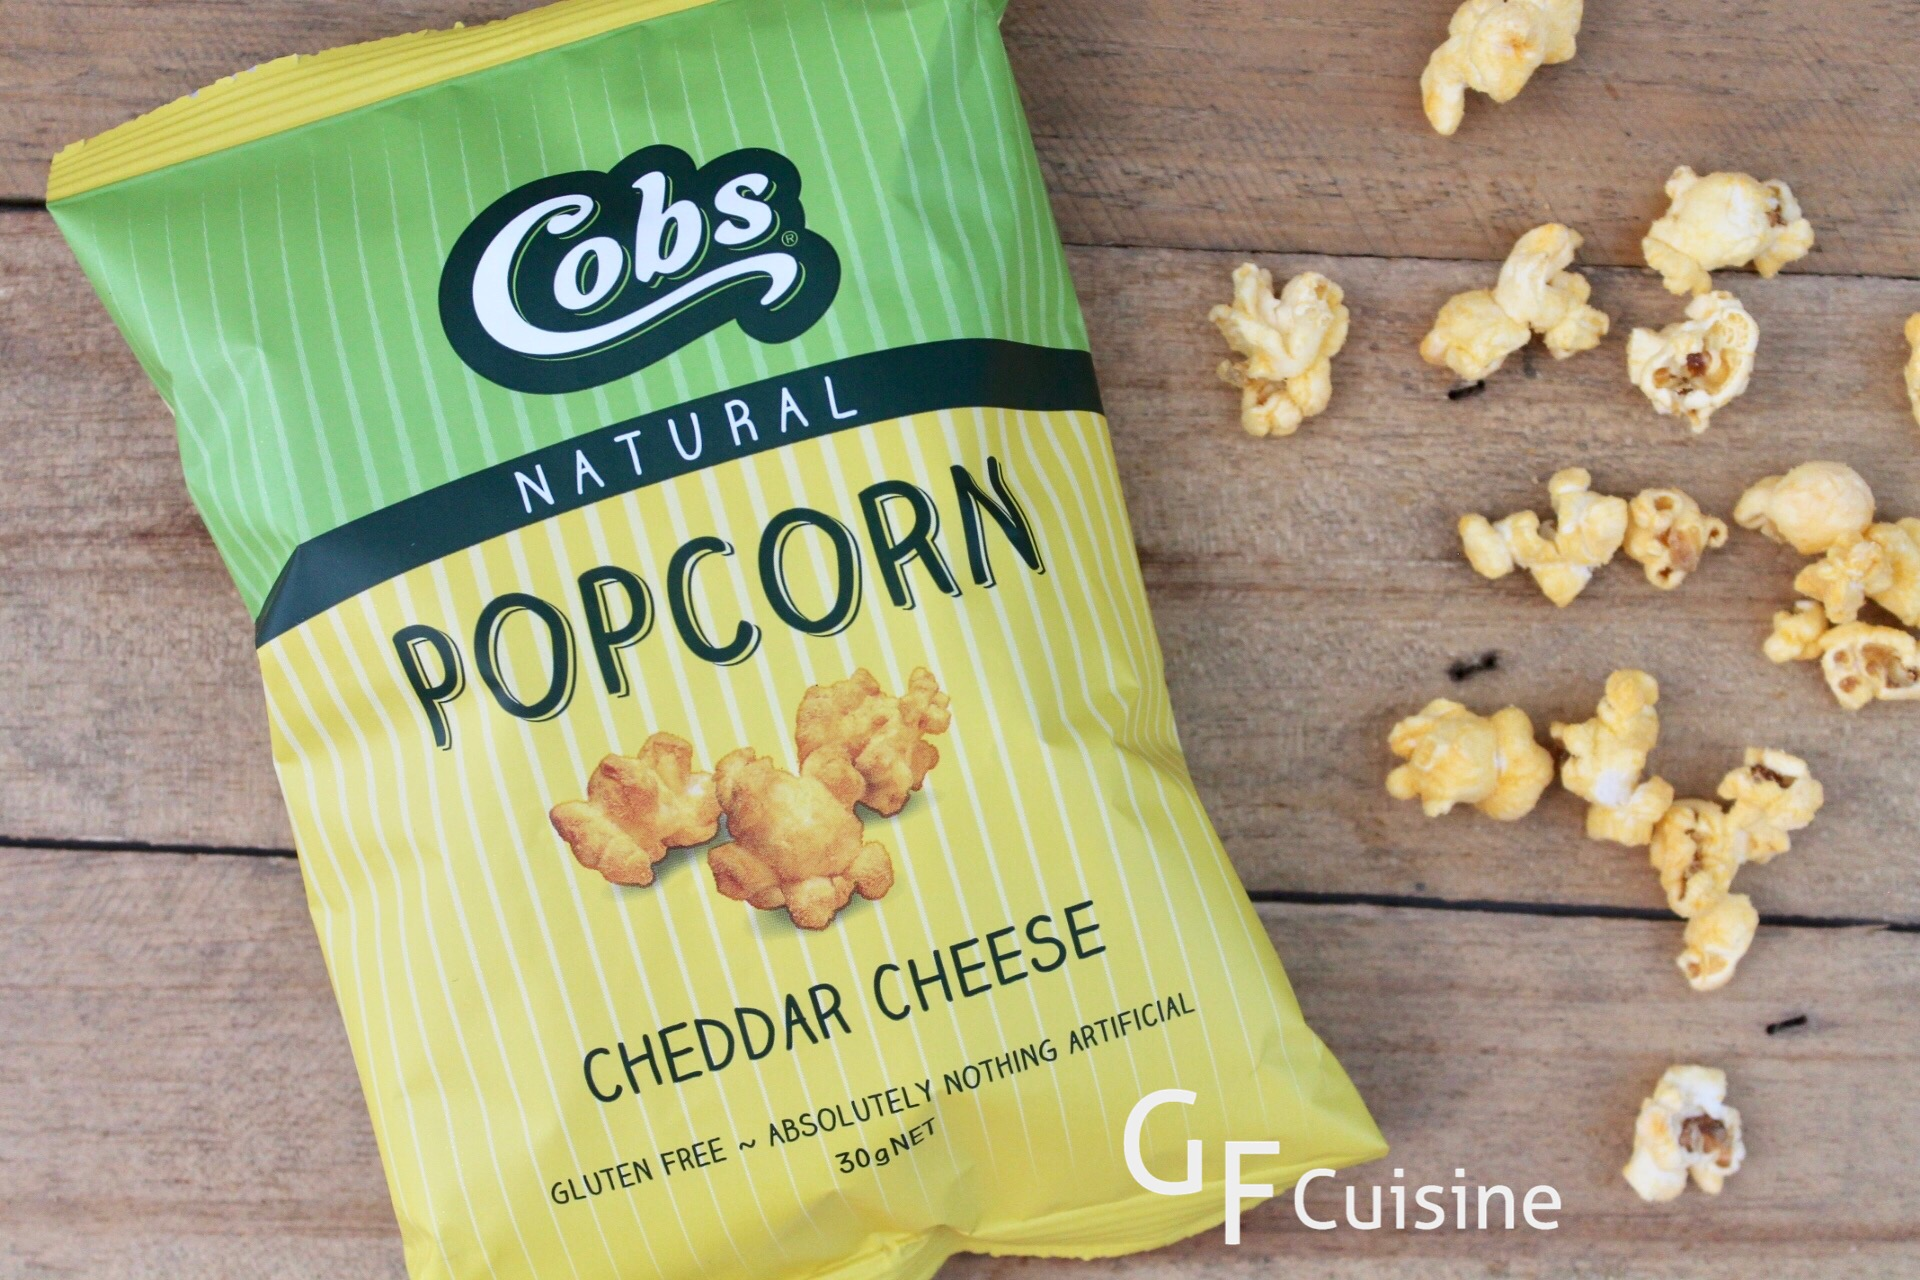 Cobs Popcorn Cheddar Cheese